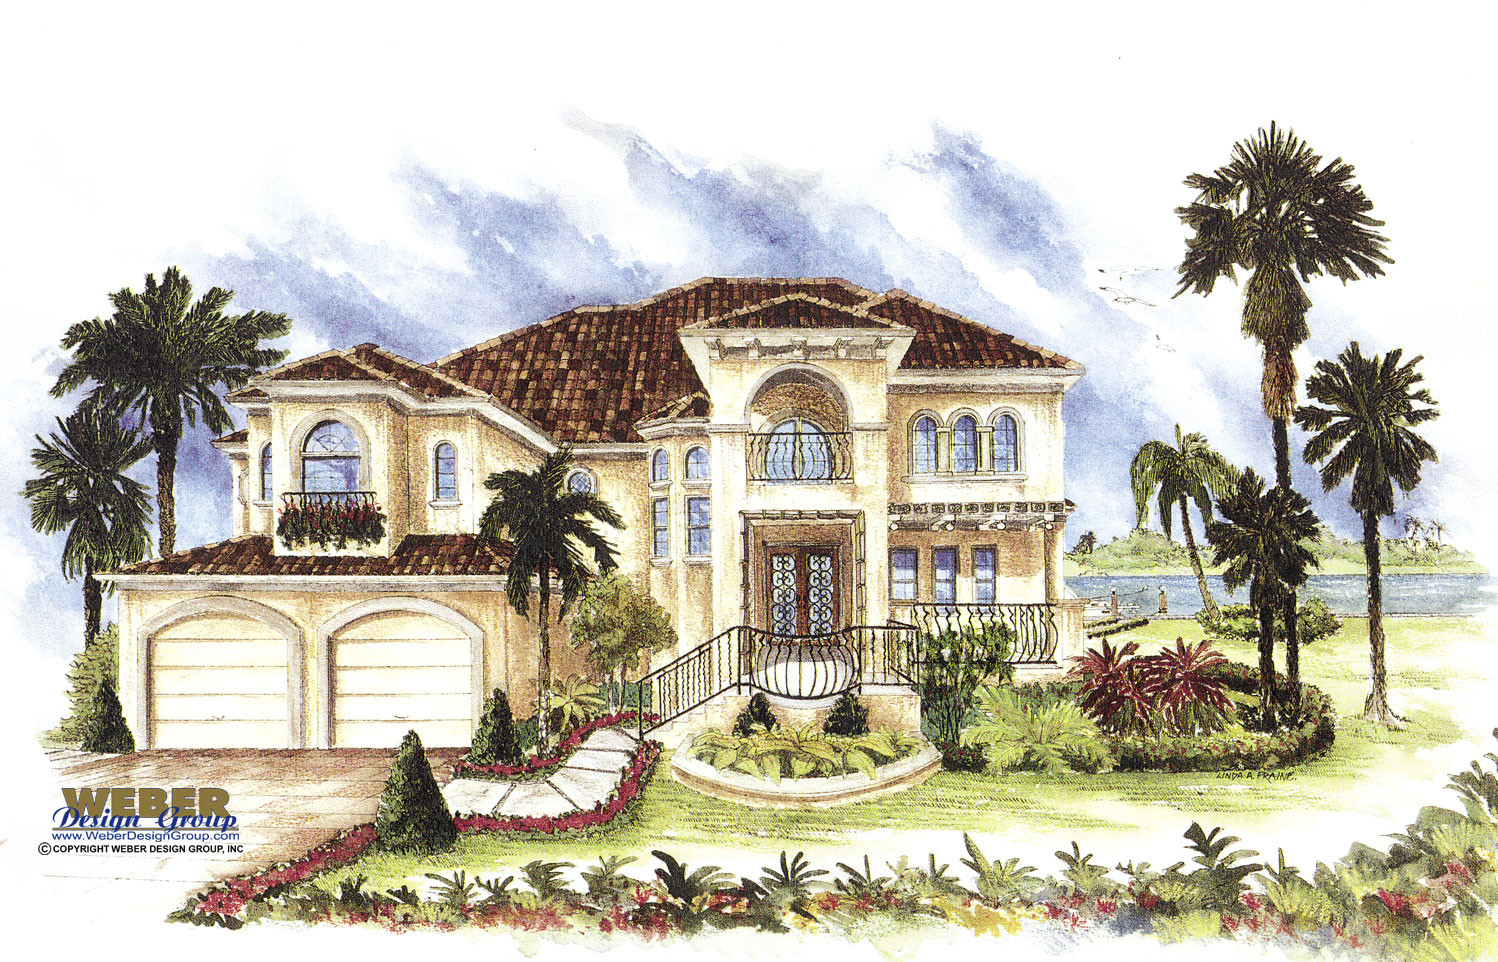 Mediterranean House Plan: 2 Story Luxury Home floor Plan ...